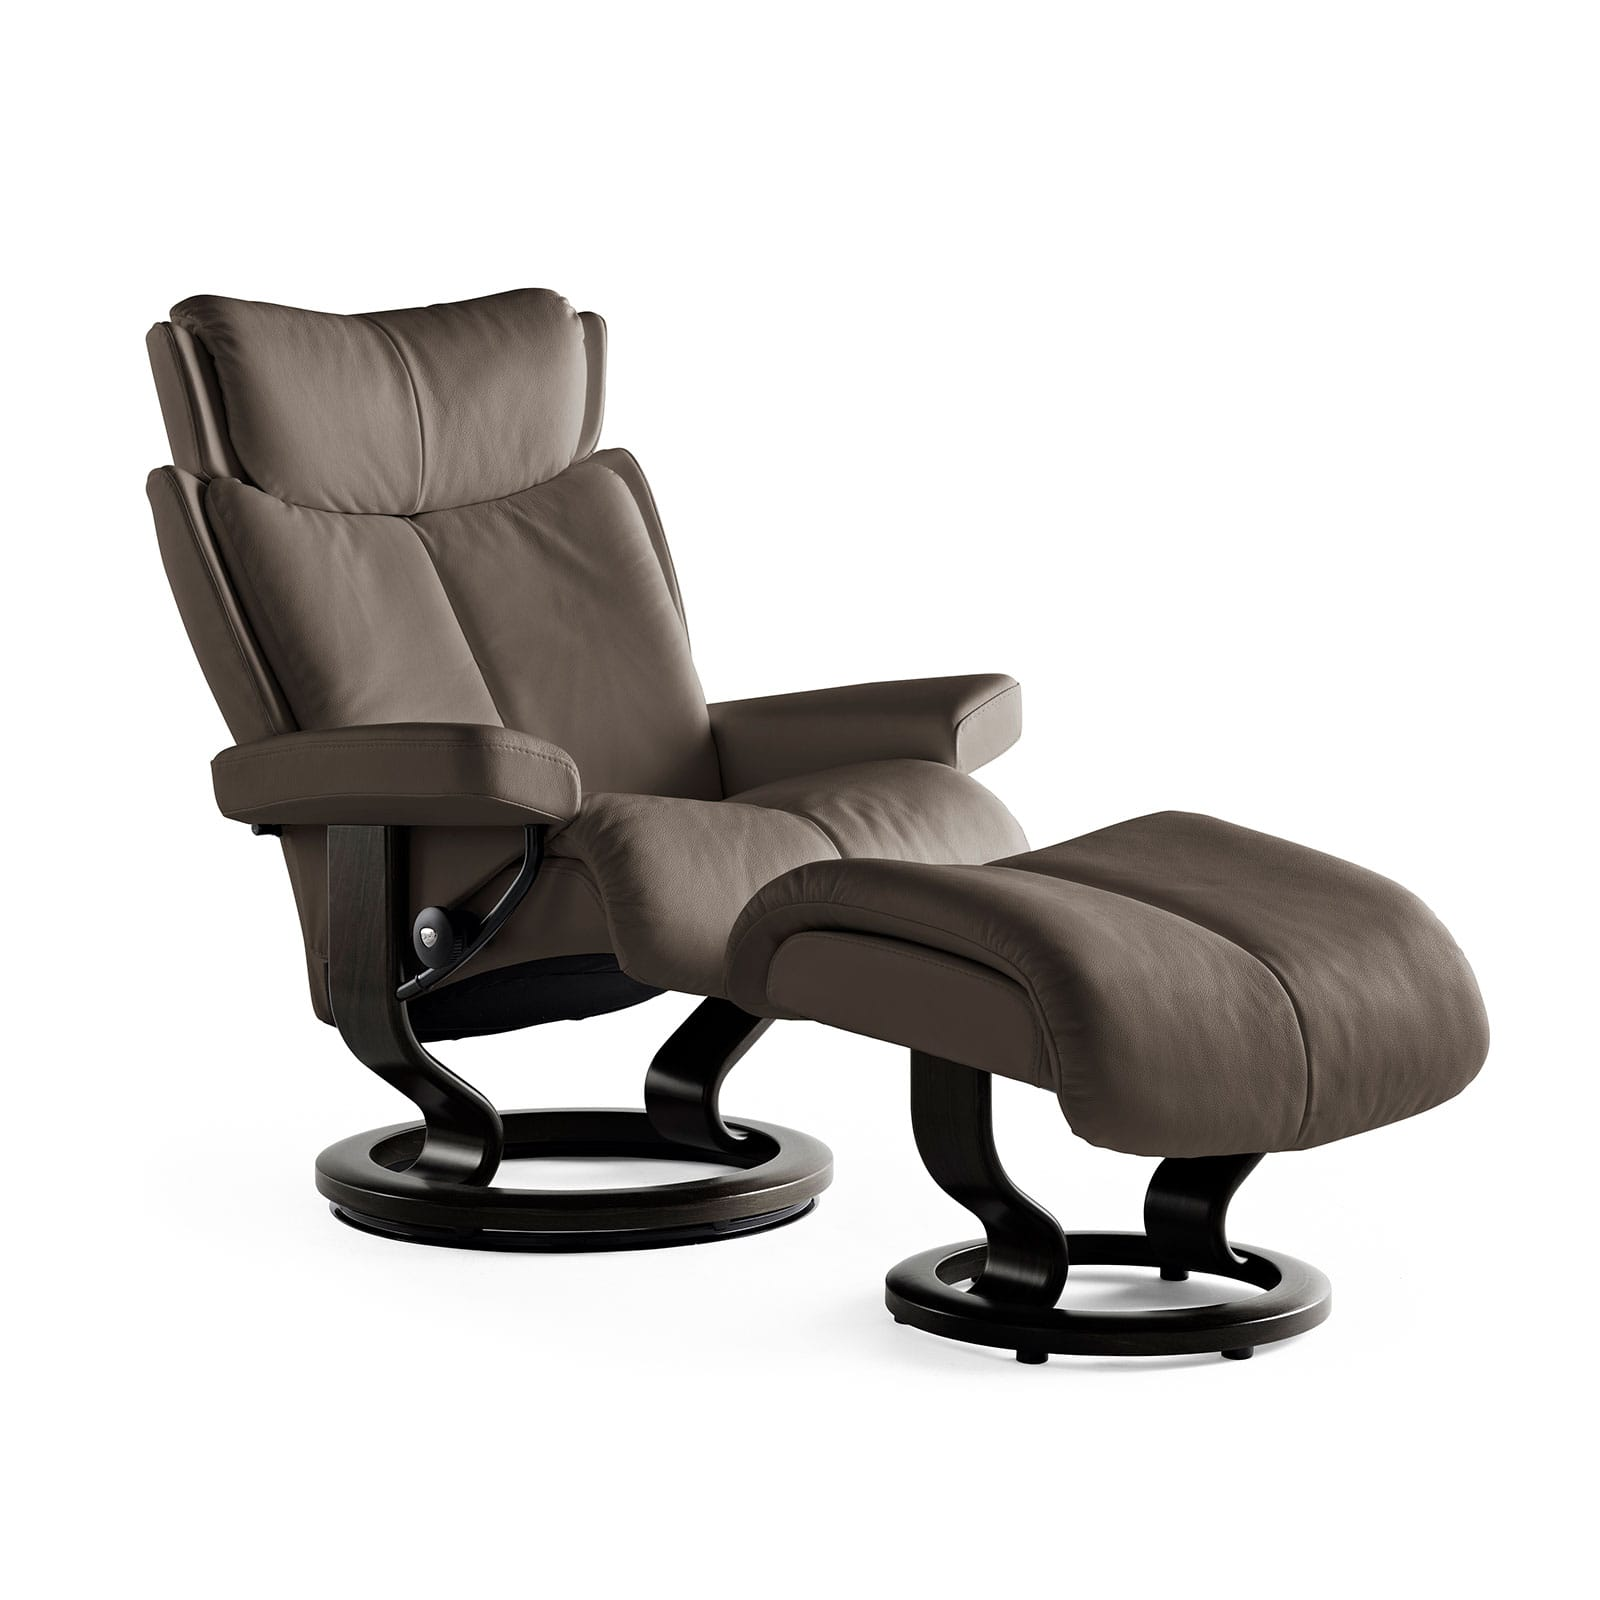 Relaxsessel stressless  Stressless MAGIC günstig online bestellen | HOUSE OF COMFORT